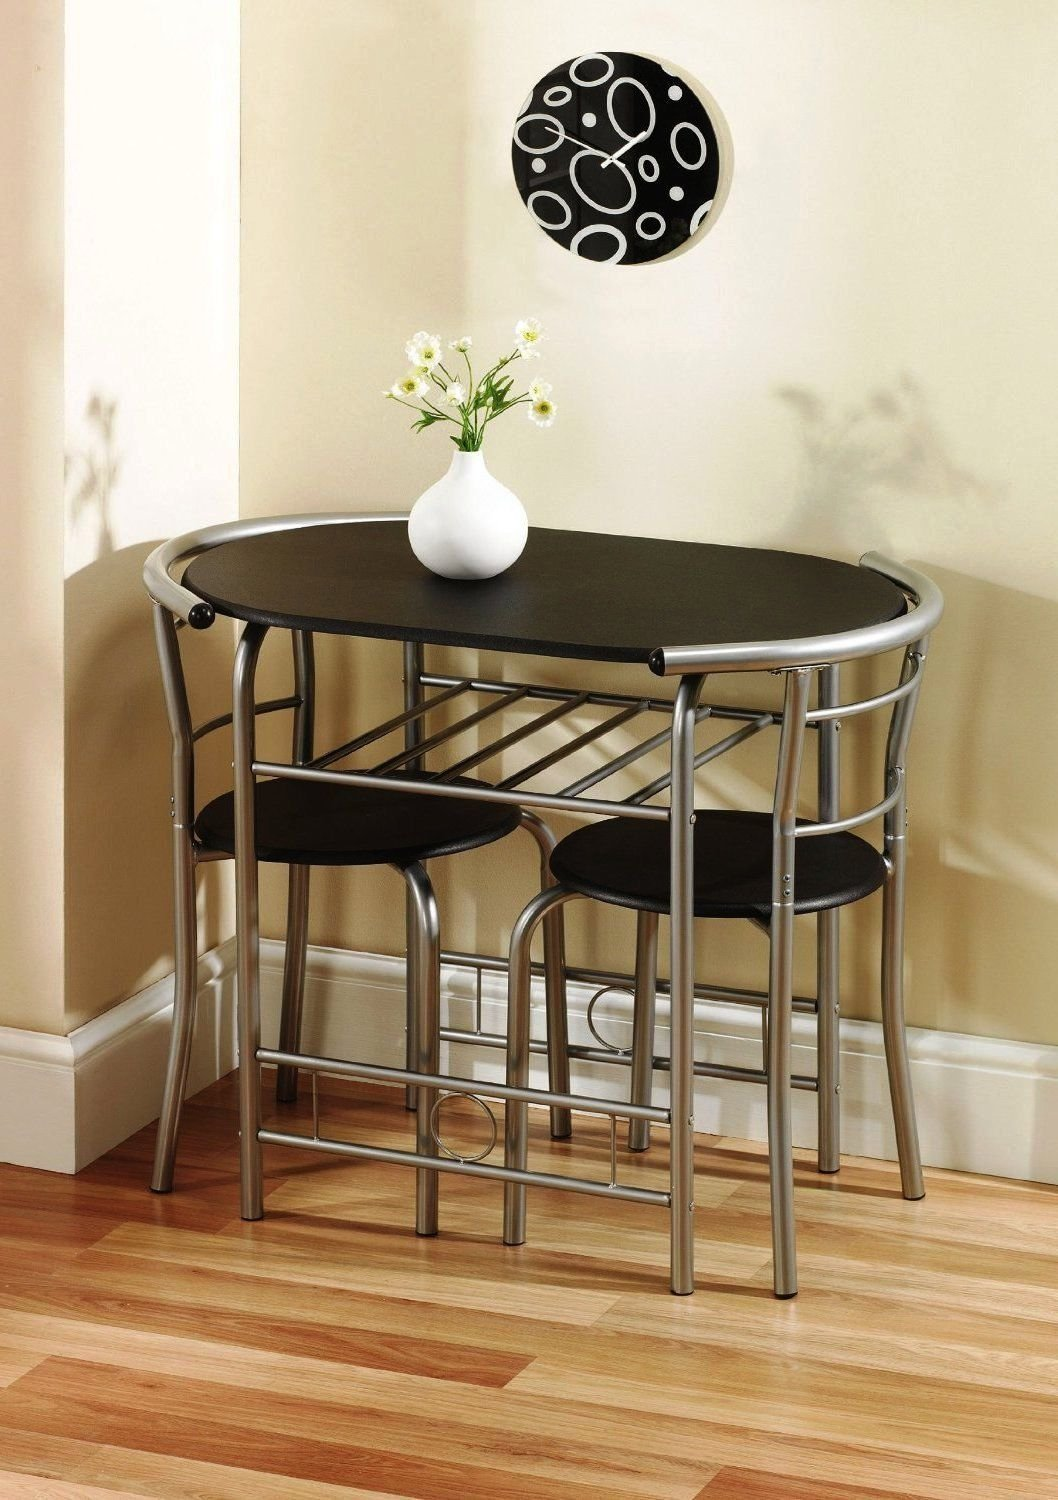 Amazon.com - Krasavic 3 Piece Kitchen Dining Table Set for 2 with Stack Chairs Wood Top Metal Finish Black/Silver - Table \u0026 Chair Sets : table and chair sets for kitchen - pezcame.com